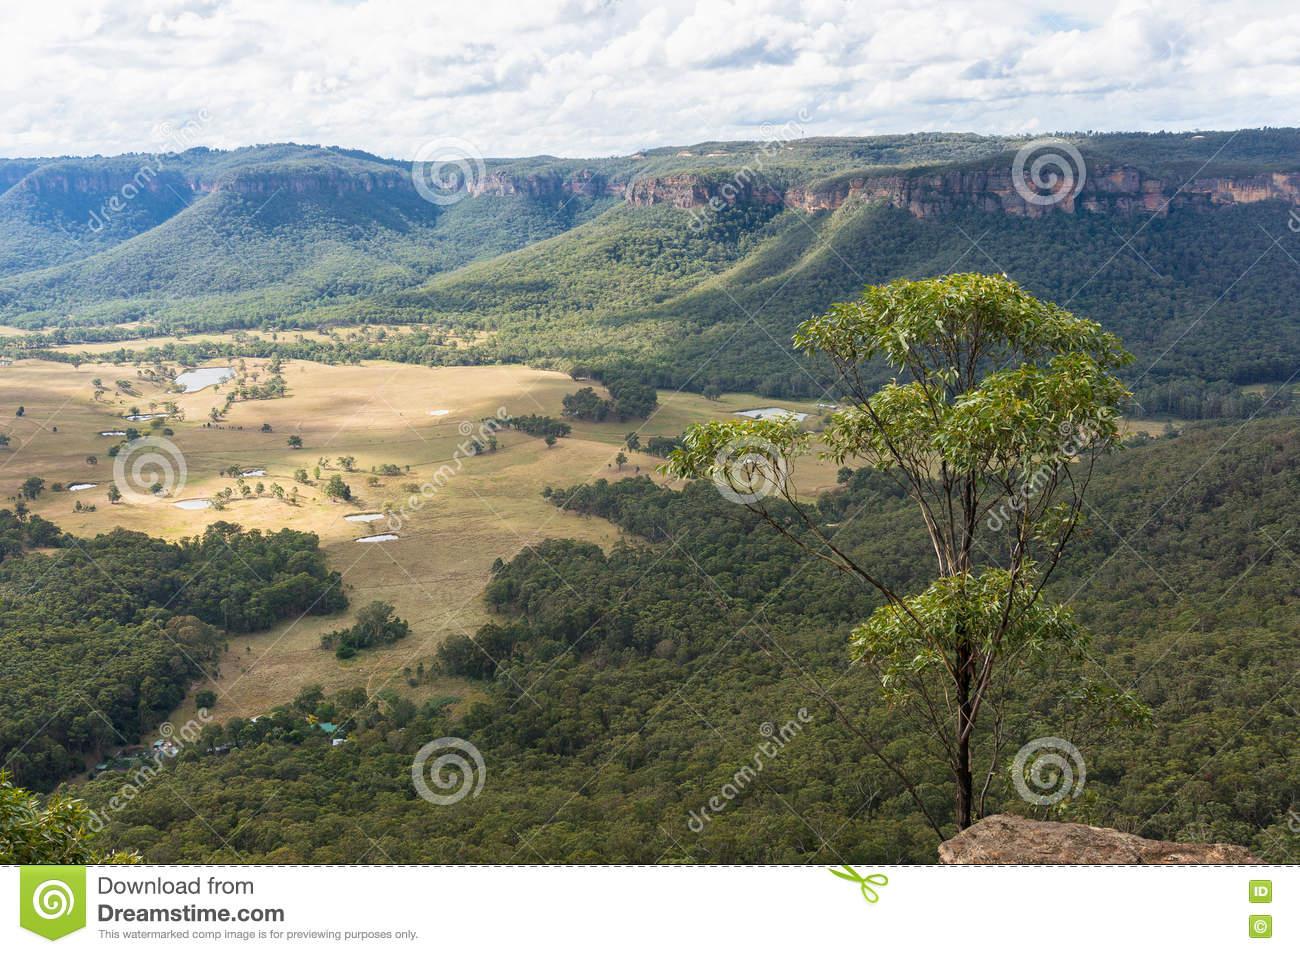 Mountain valley landscape lookout view